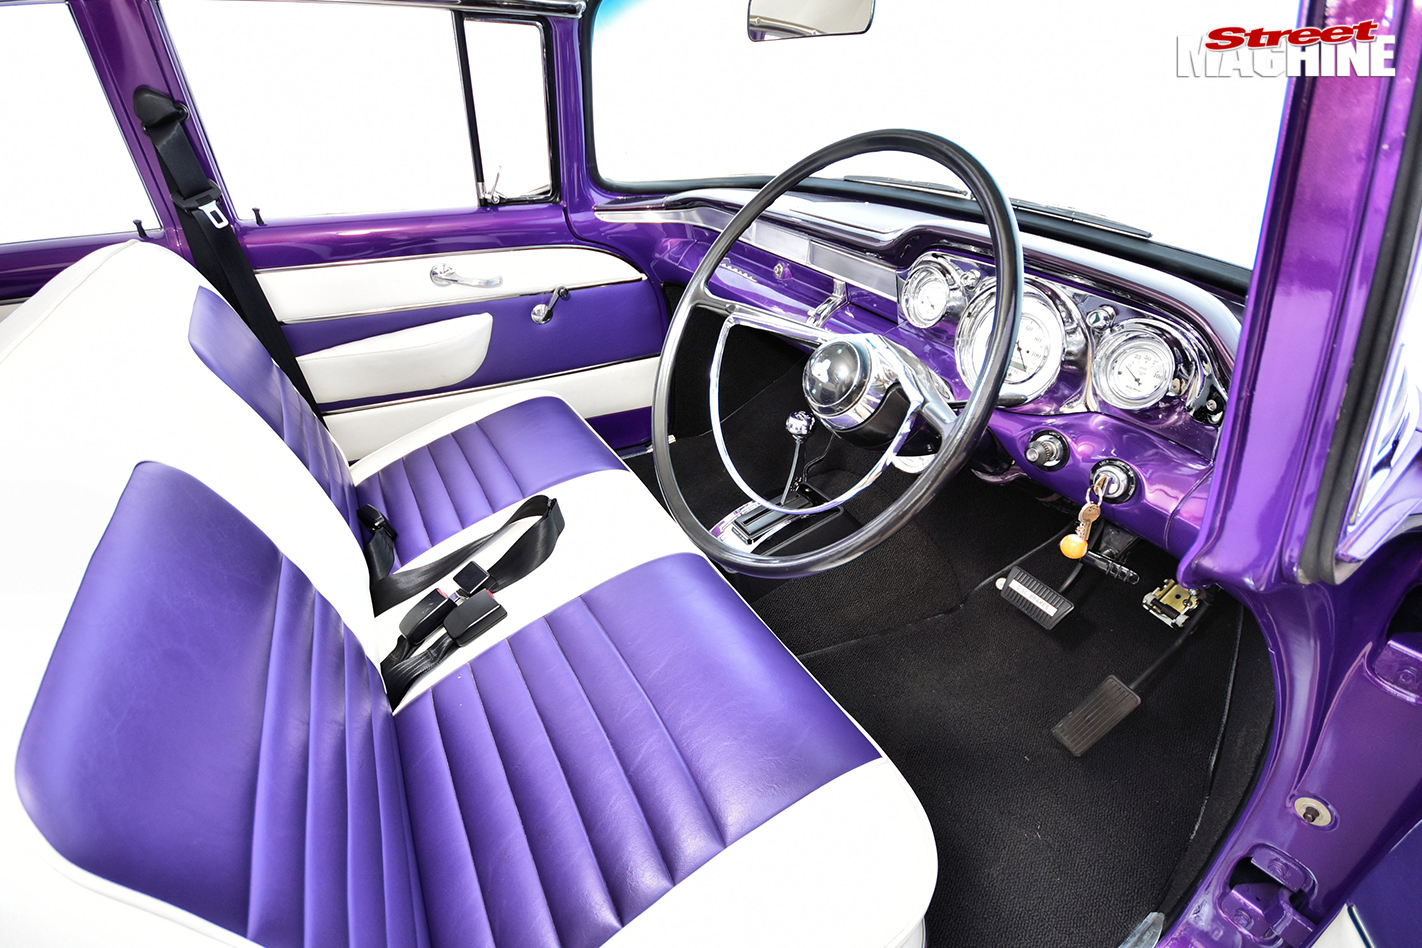 FB-HOLDEN-READER'S-CAR-OF-THE-WEEK-interior